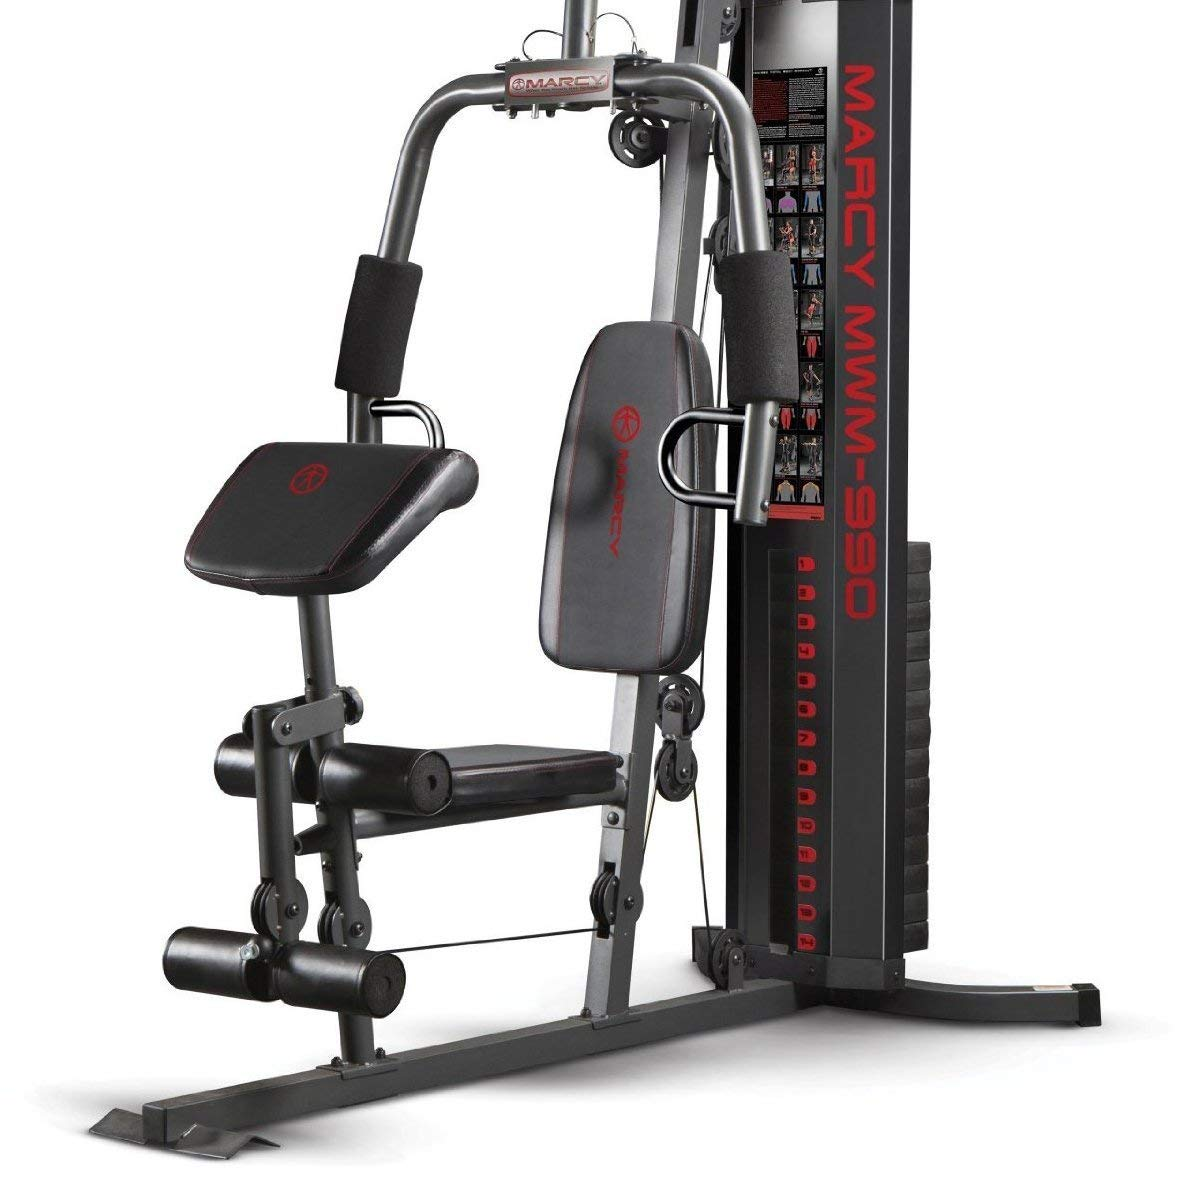 Marcy 150-lb Multifunctional Home Gym Station for Total Body Training MWM-990 by Marcy (Image #3)